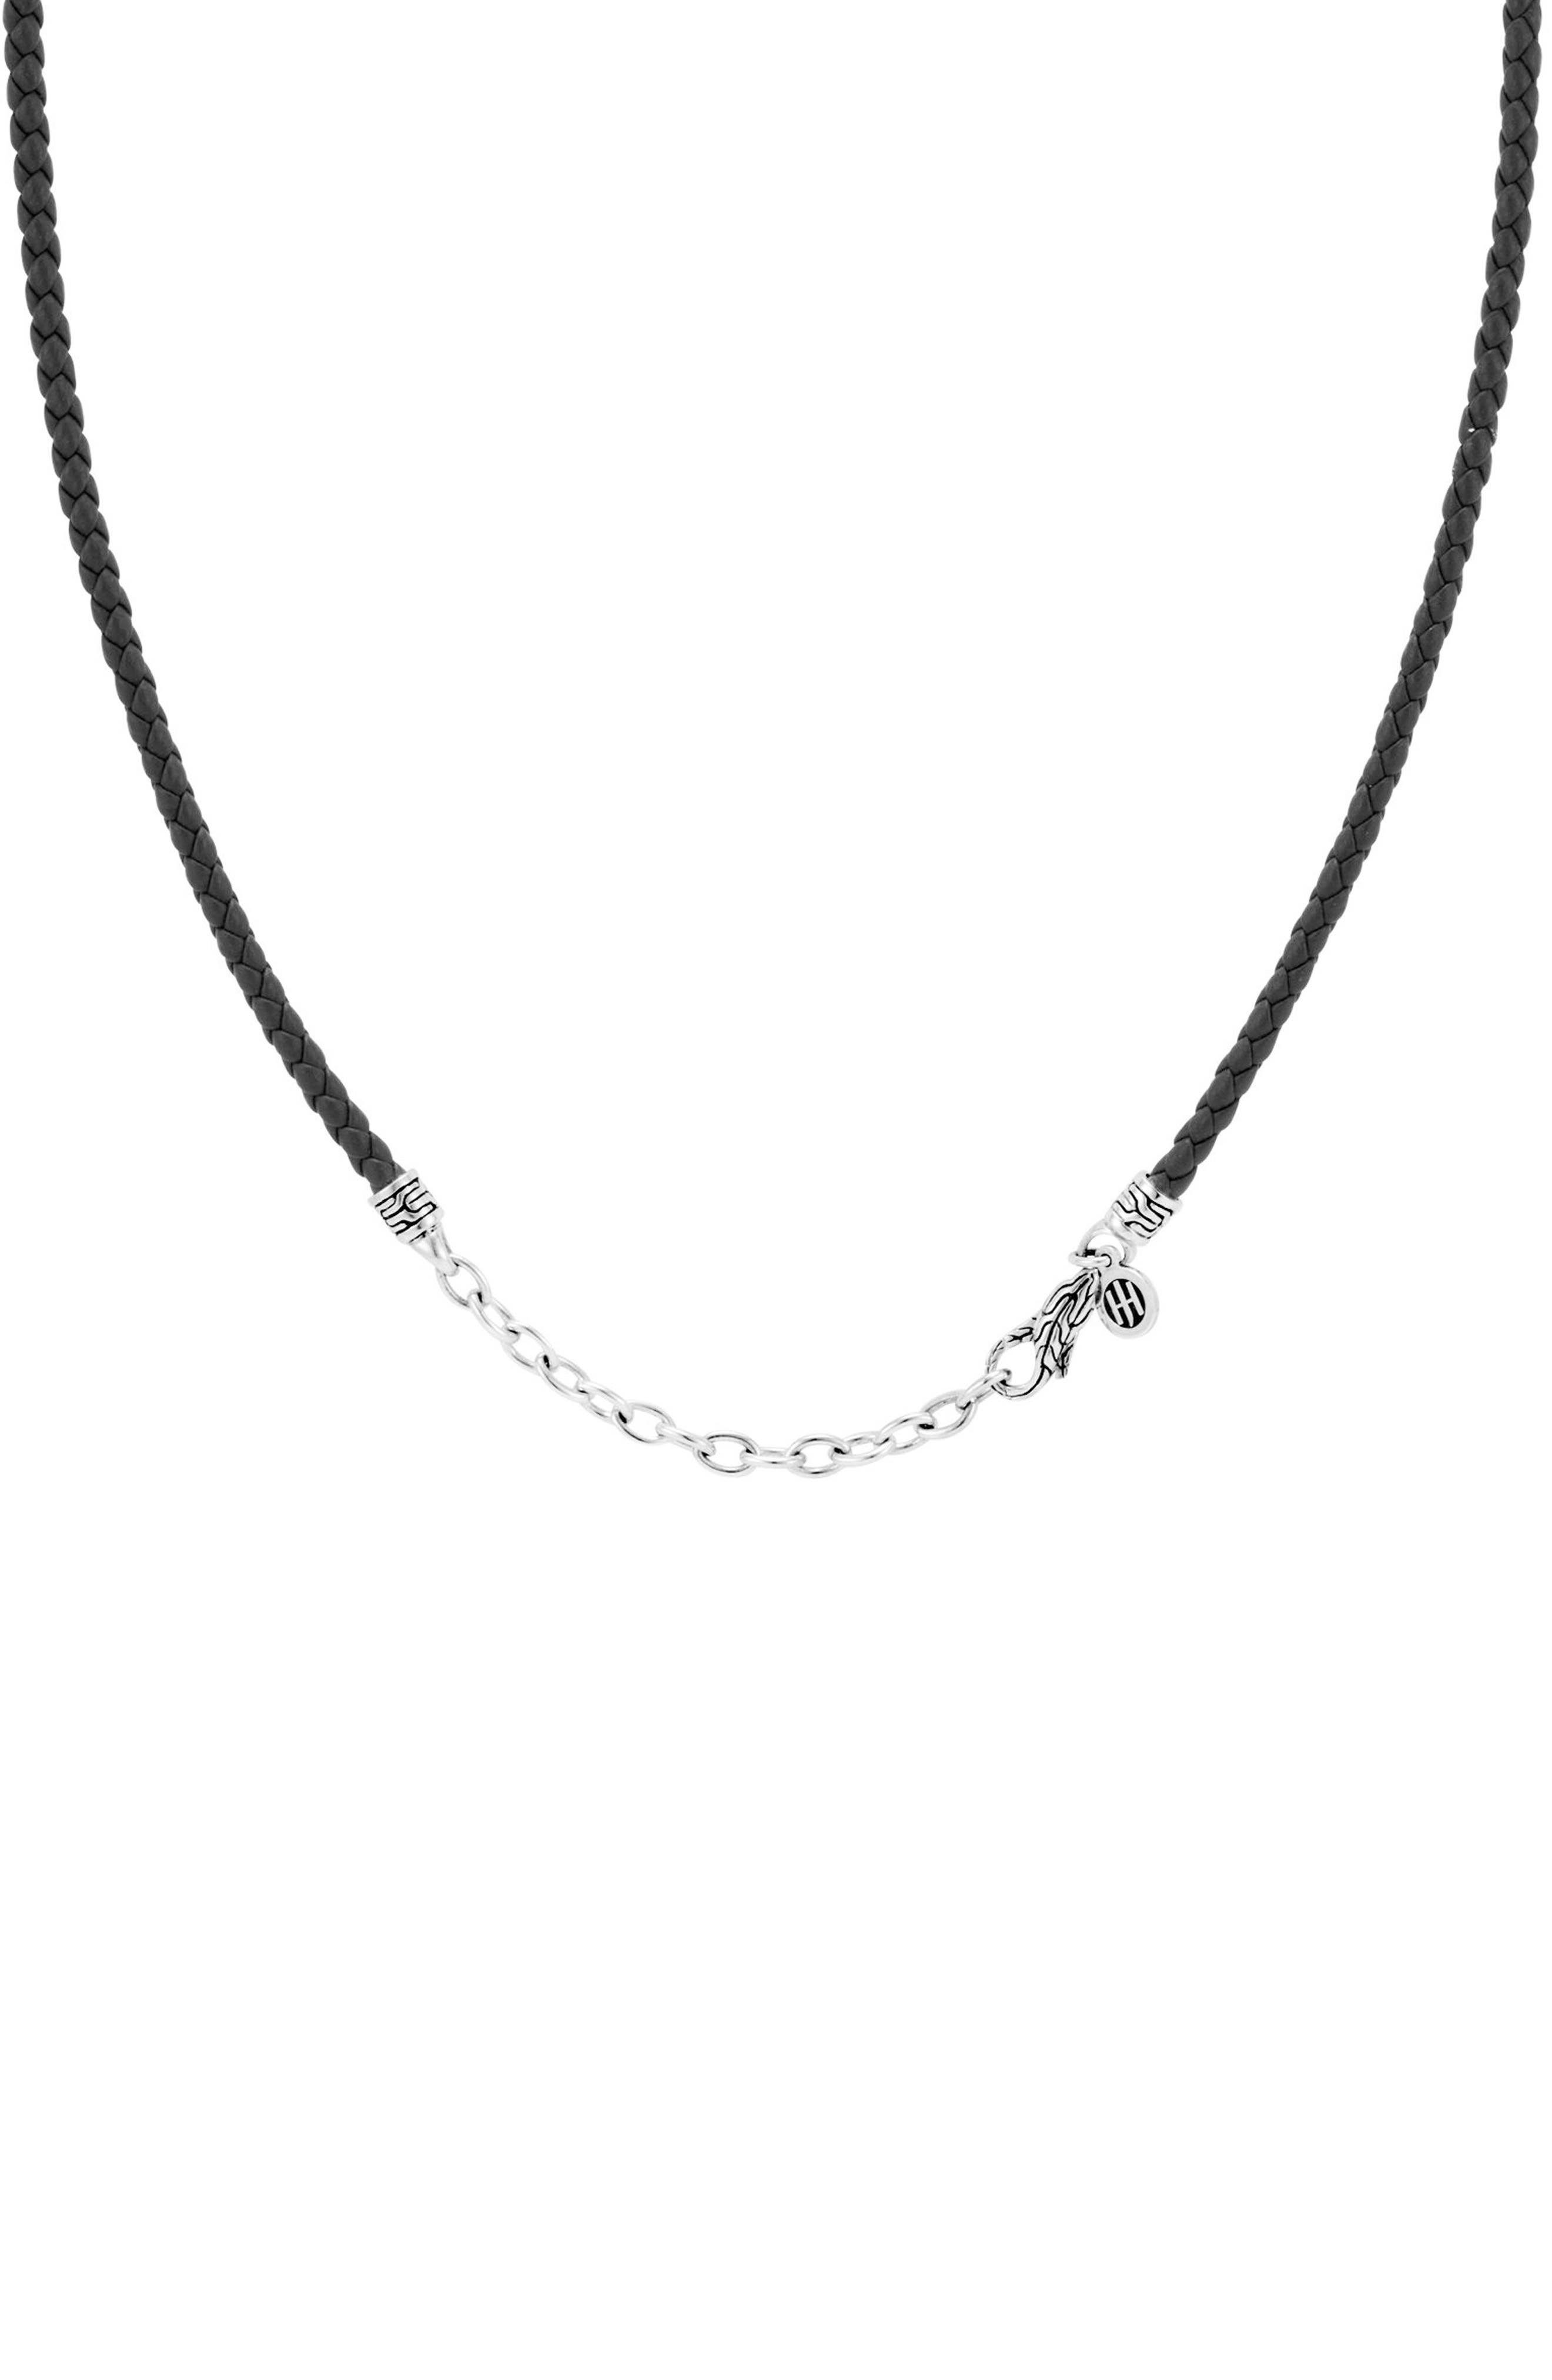 Leather Cord Necklace,                             Main thumbnail 1, color,                             SILVER/ BLACK